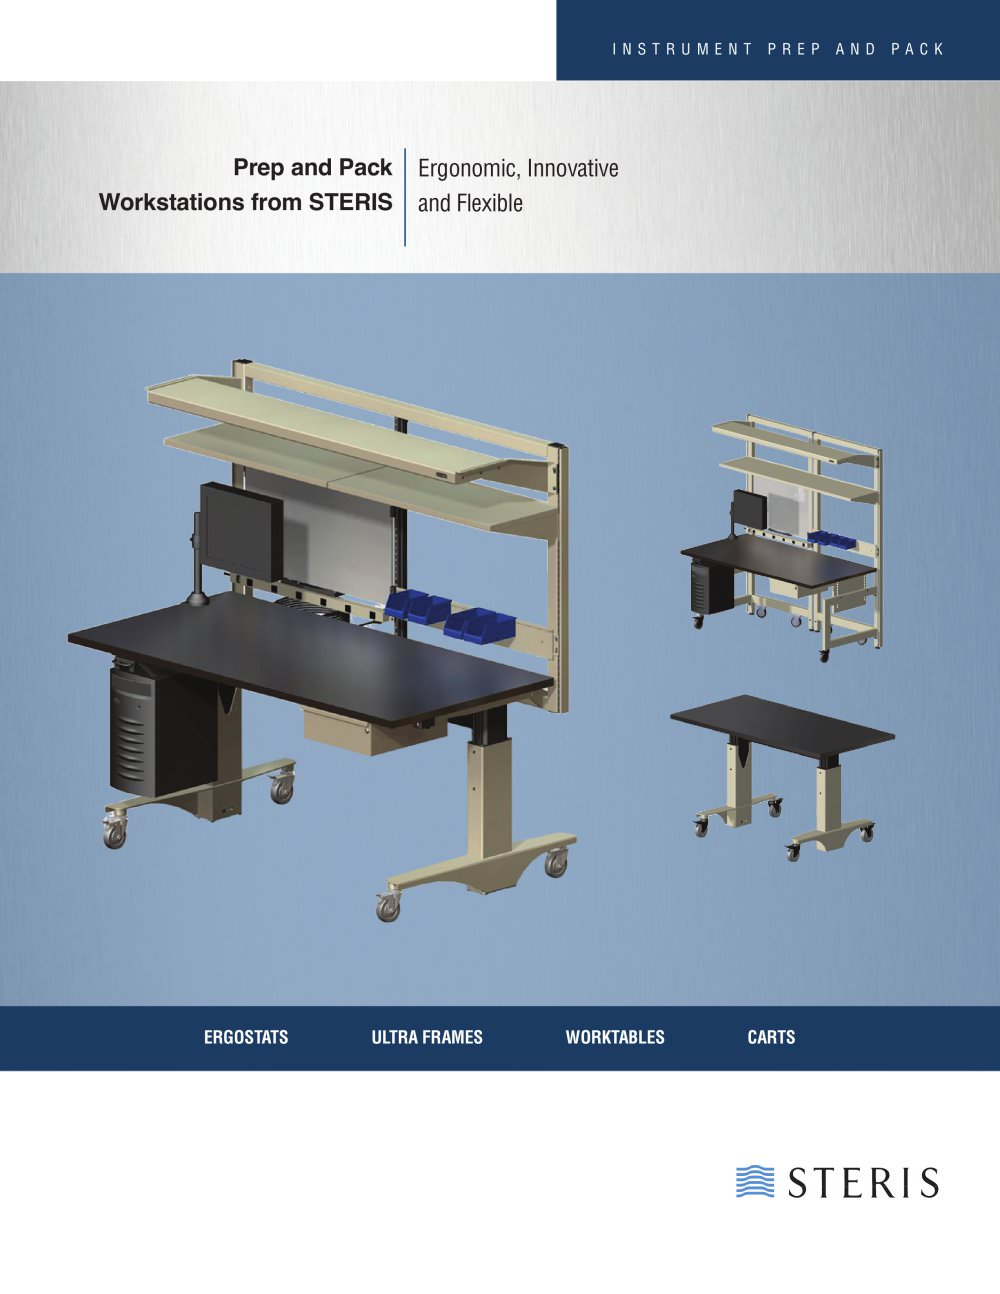 PREP AND PACK WORKSTATIONS FROM STERIS - 1 / 4 Pages